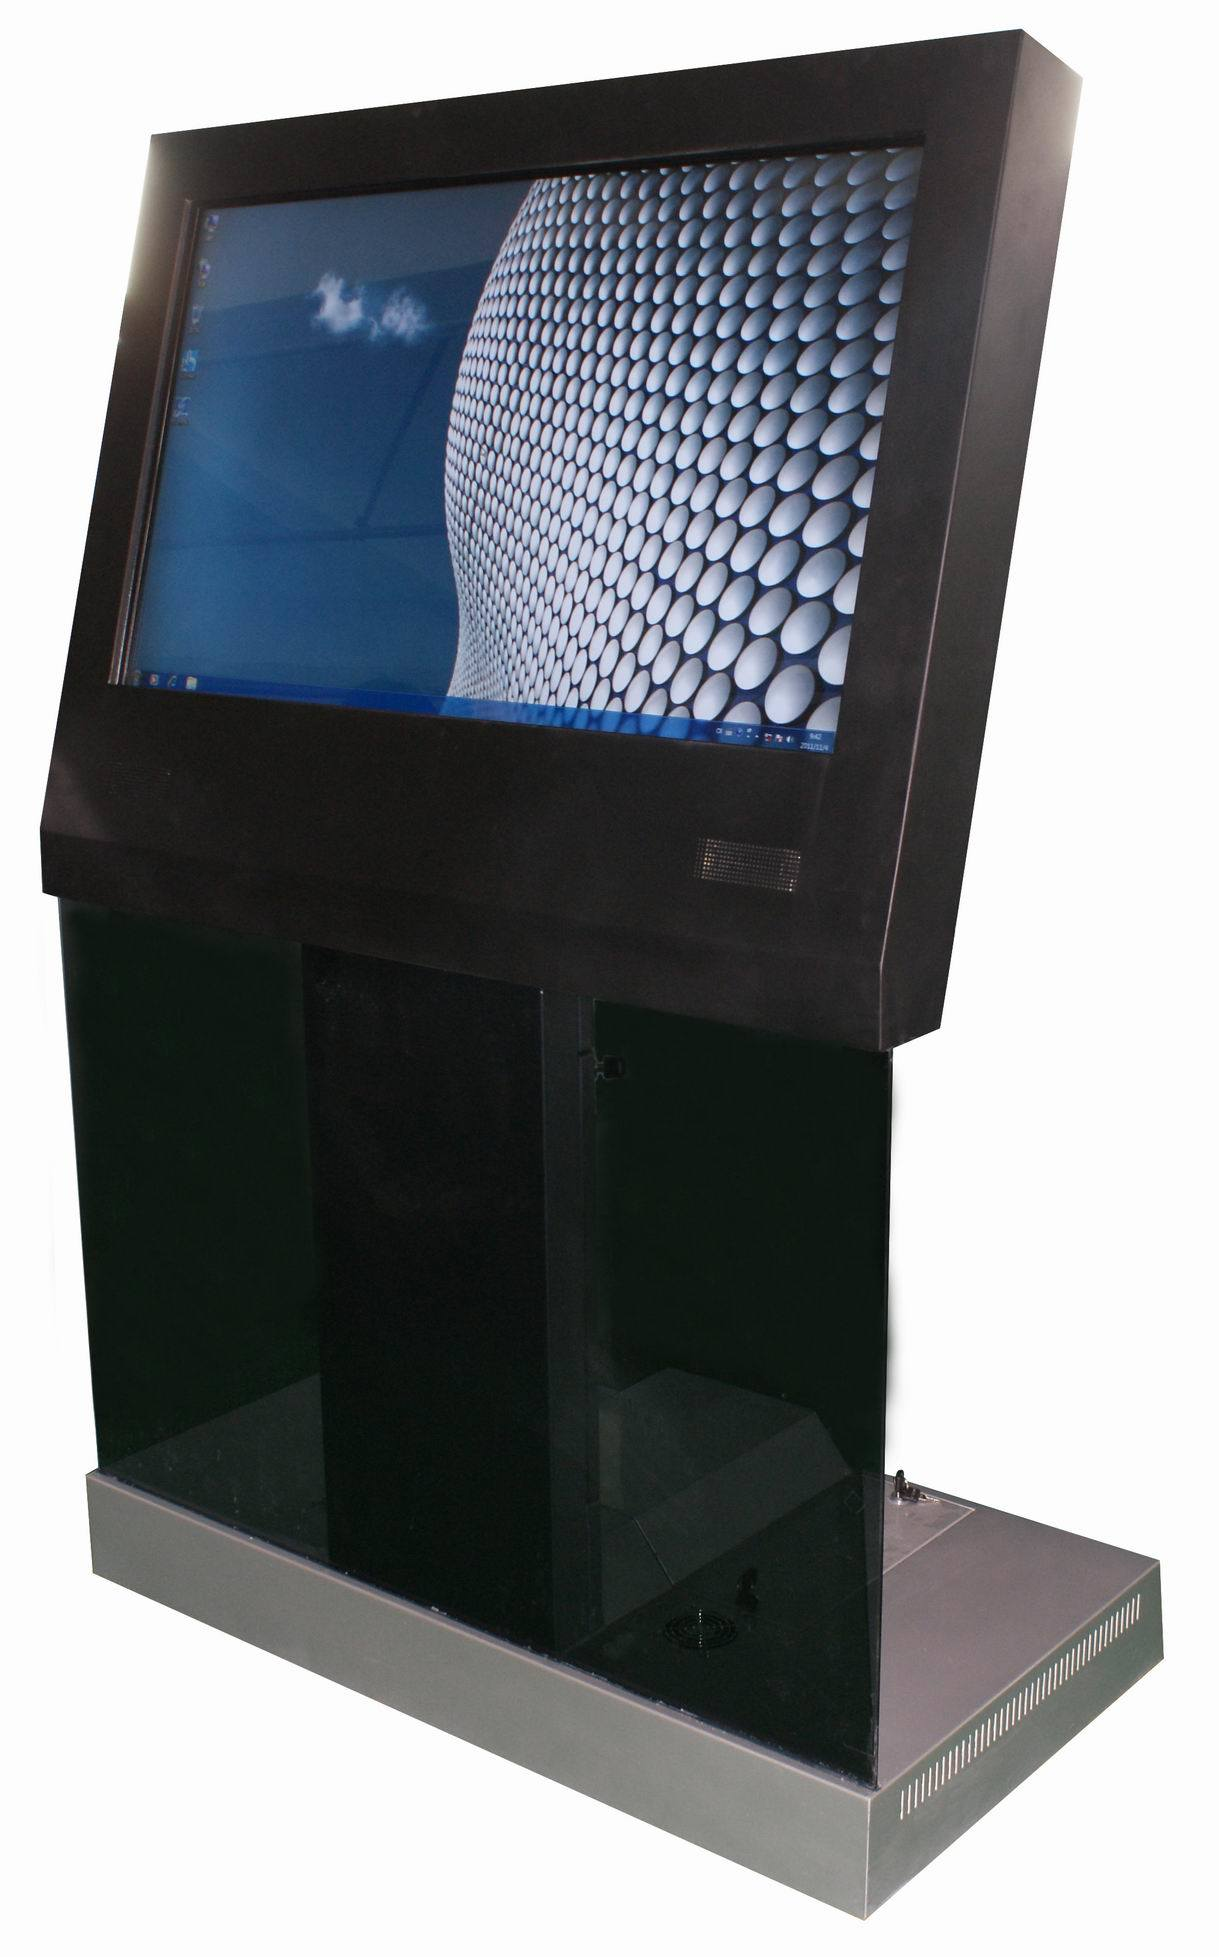 china 42 65 lcd self service terminals kiosk information. Black Bedroom Furniture Sets. Home Design Ideas